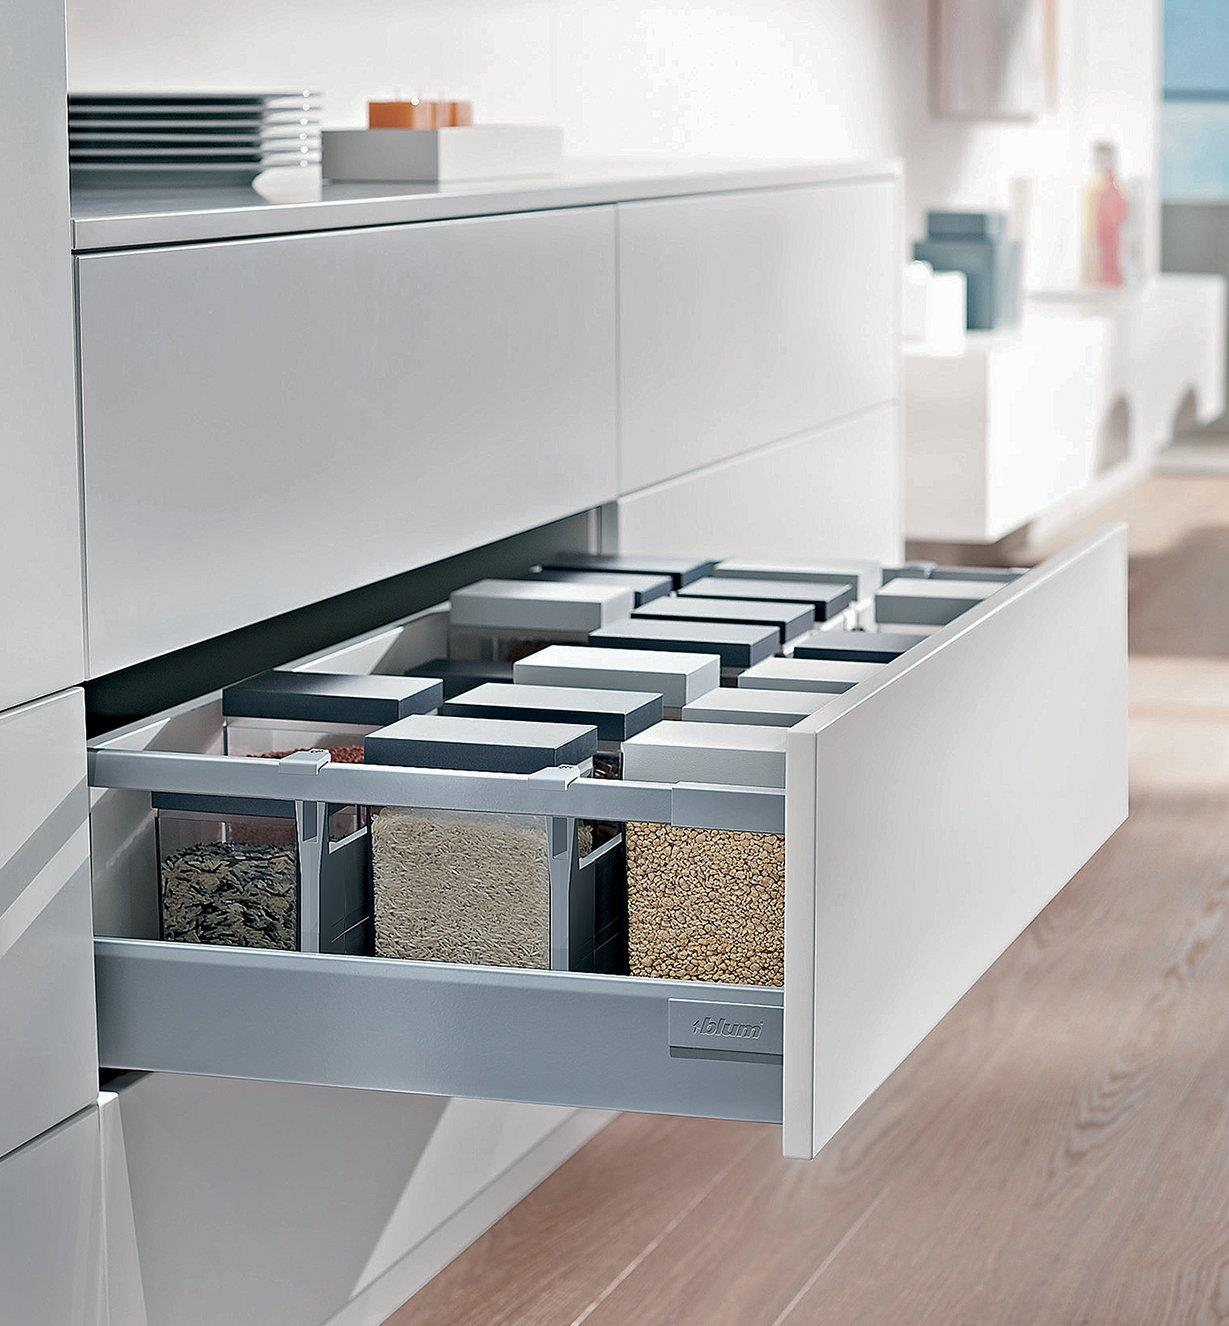 Example of kitchen drawer made with Soft-Close Drawer Kit, Type D